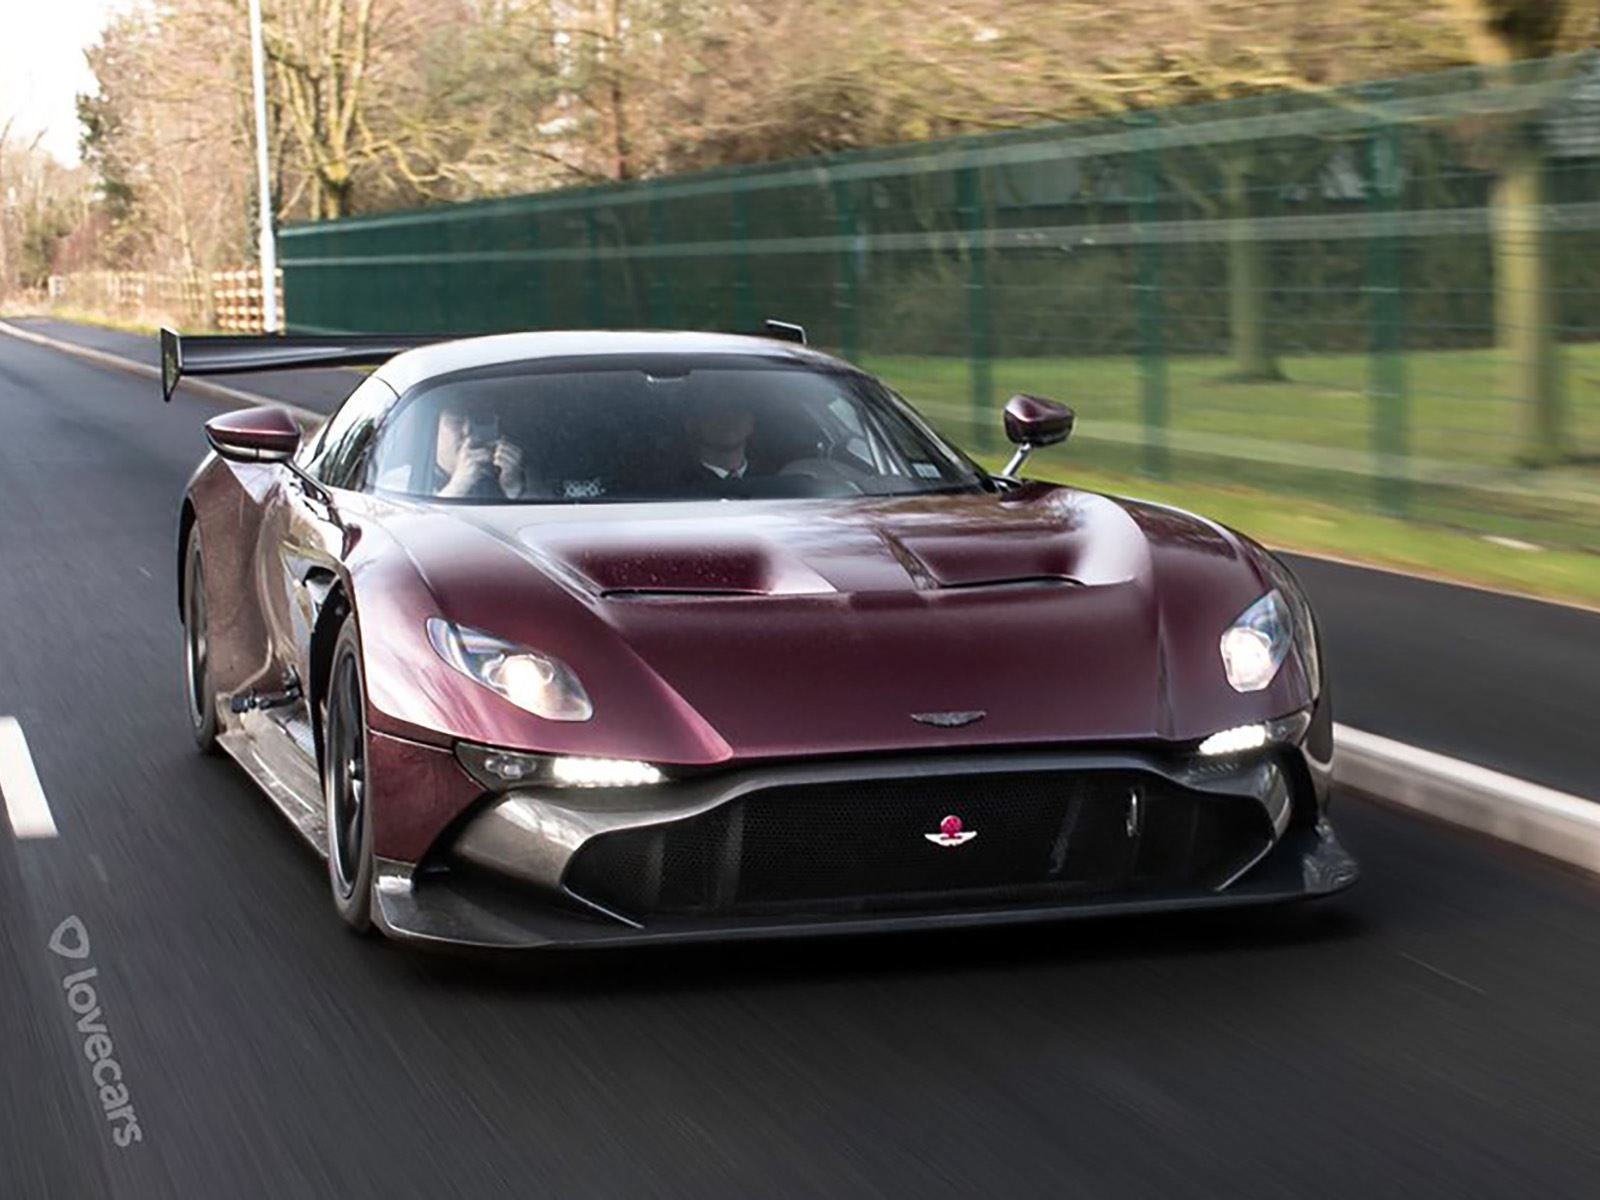 The World S First Street Legal Aston Martin Vulcan Is Finally Here Carbuzz